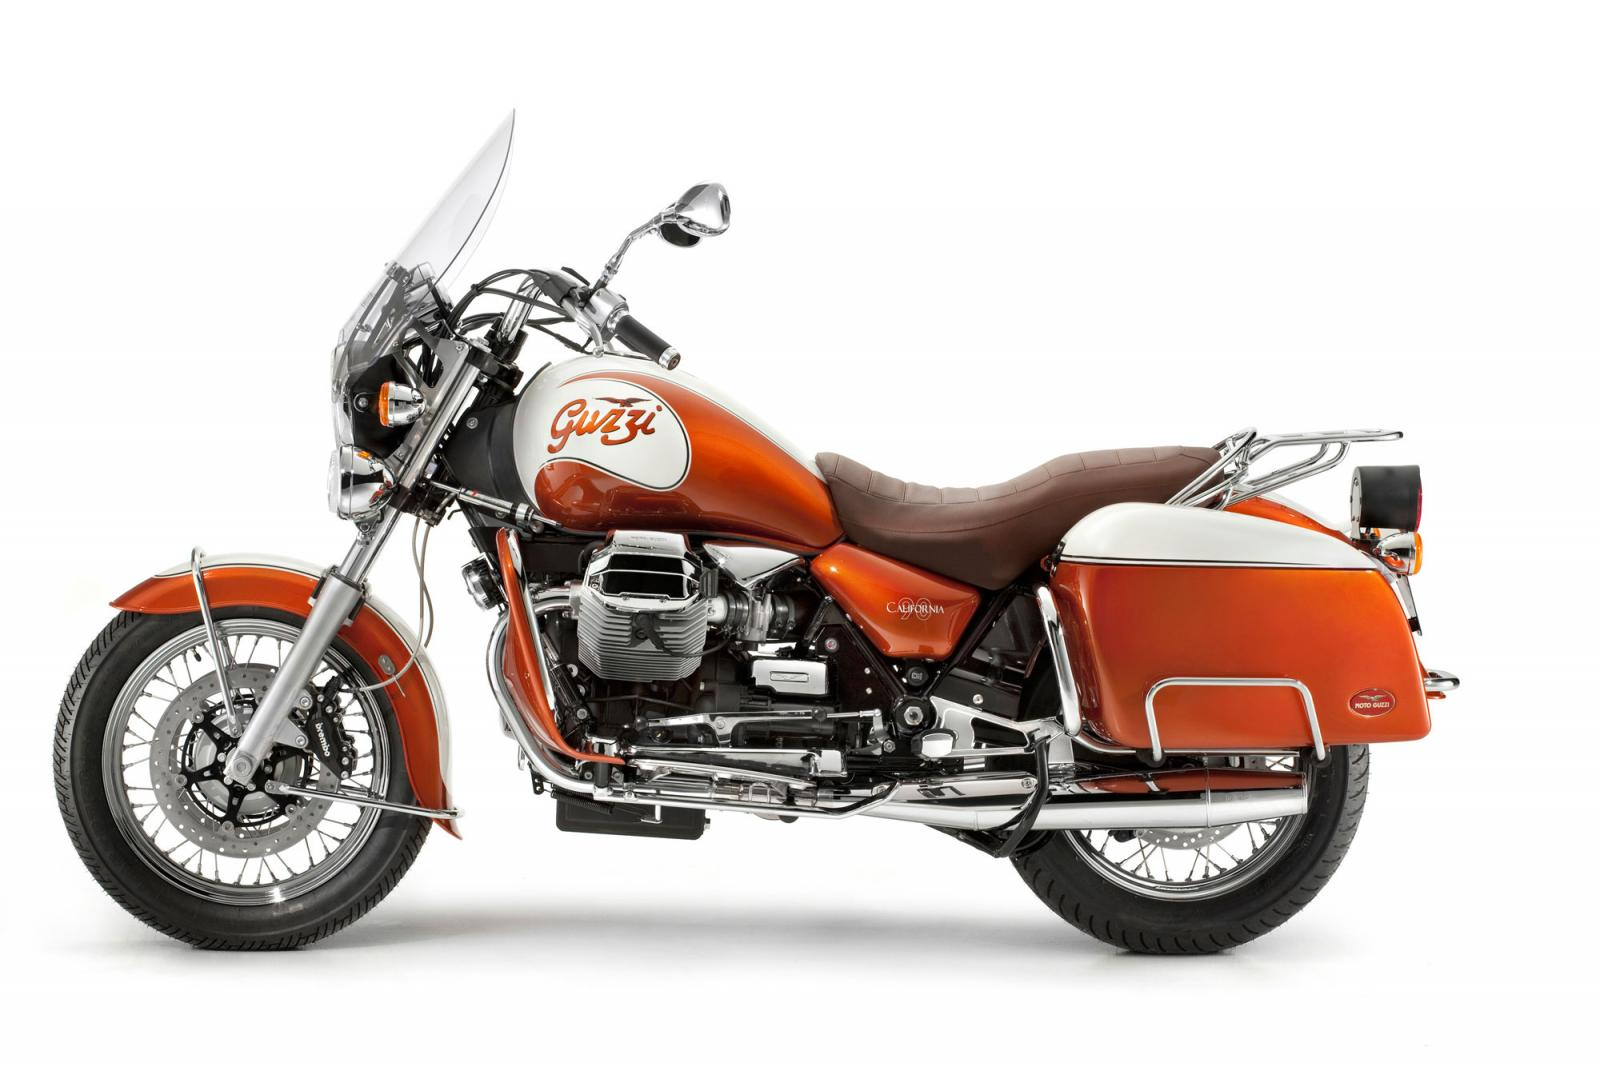 Moto Guzzi California 75 2000 images #108447